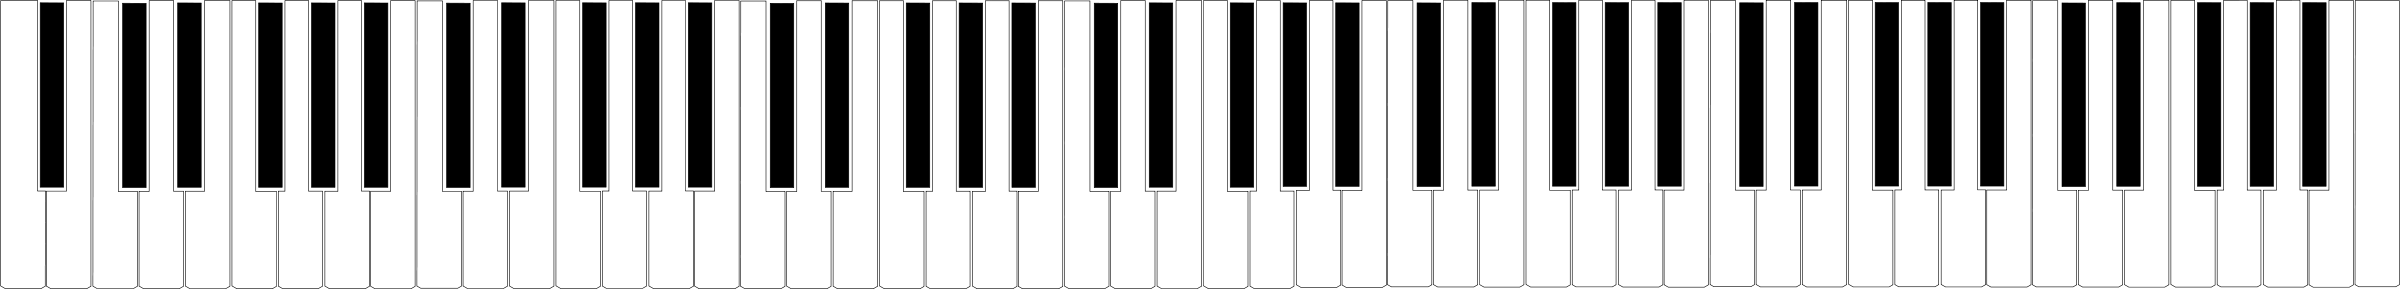 Clipart - Standard 88-key Piano Keyboard